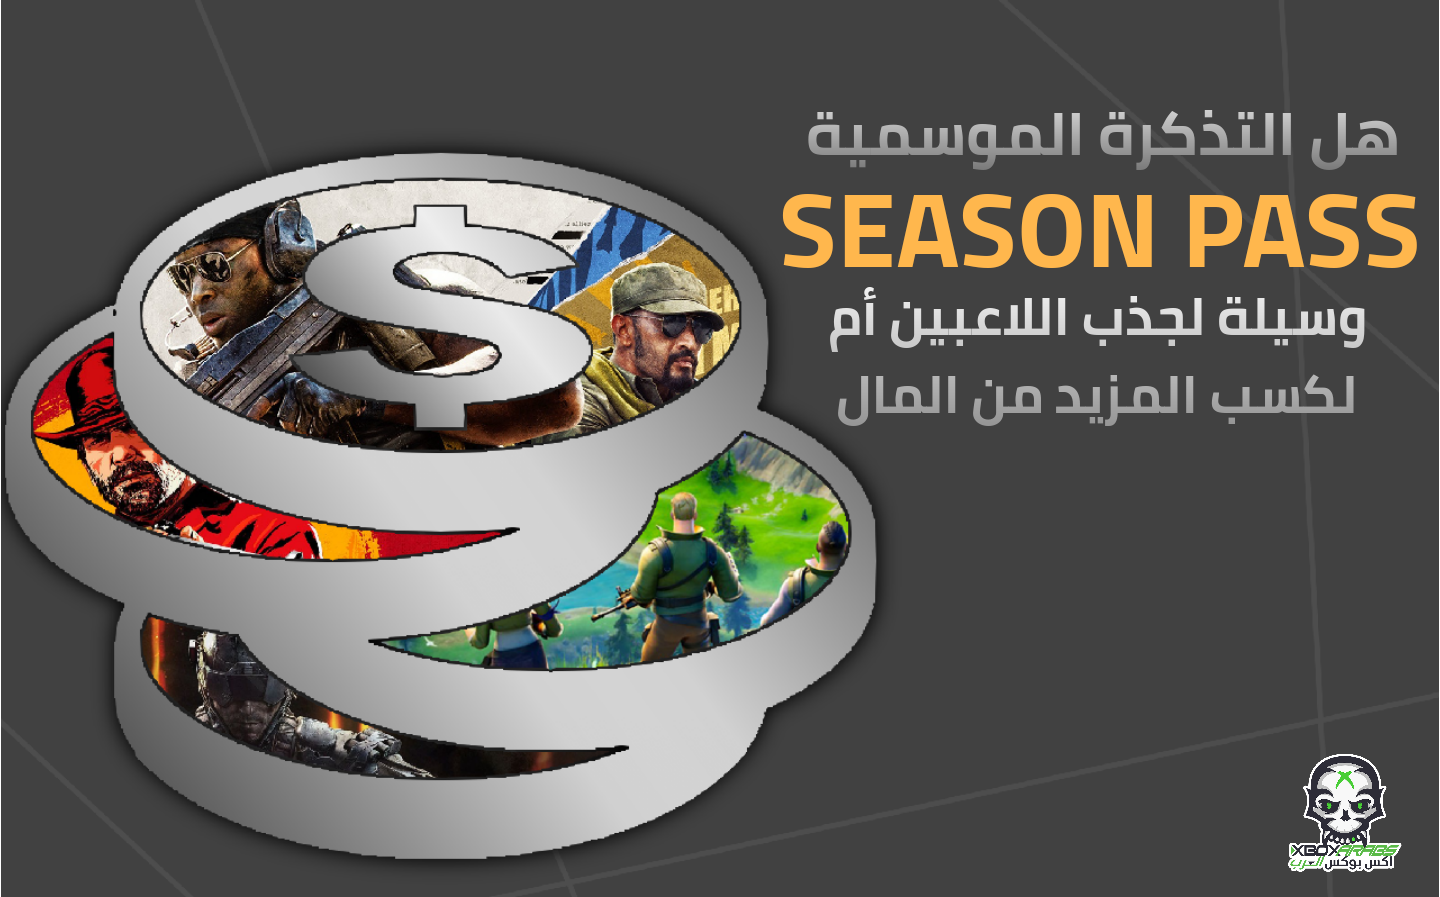 The Life and Death of Season Pass